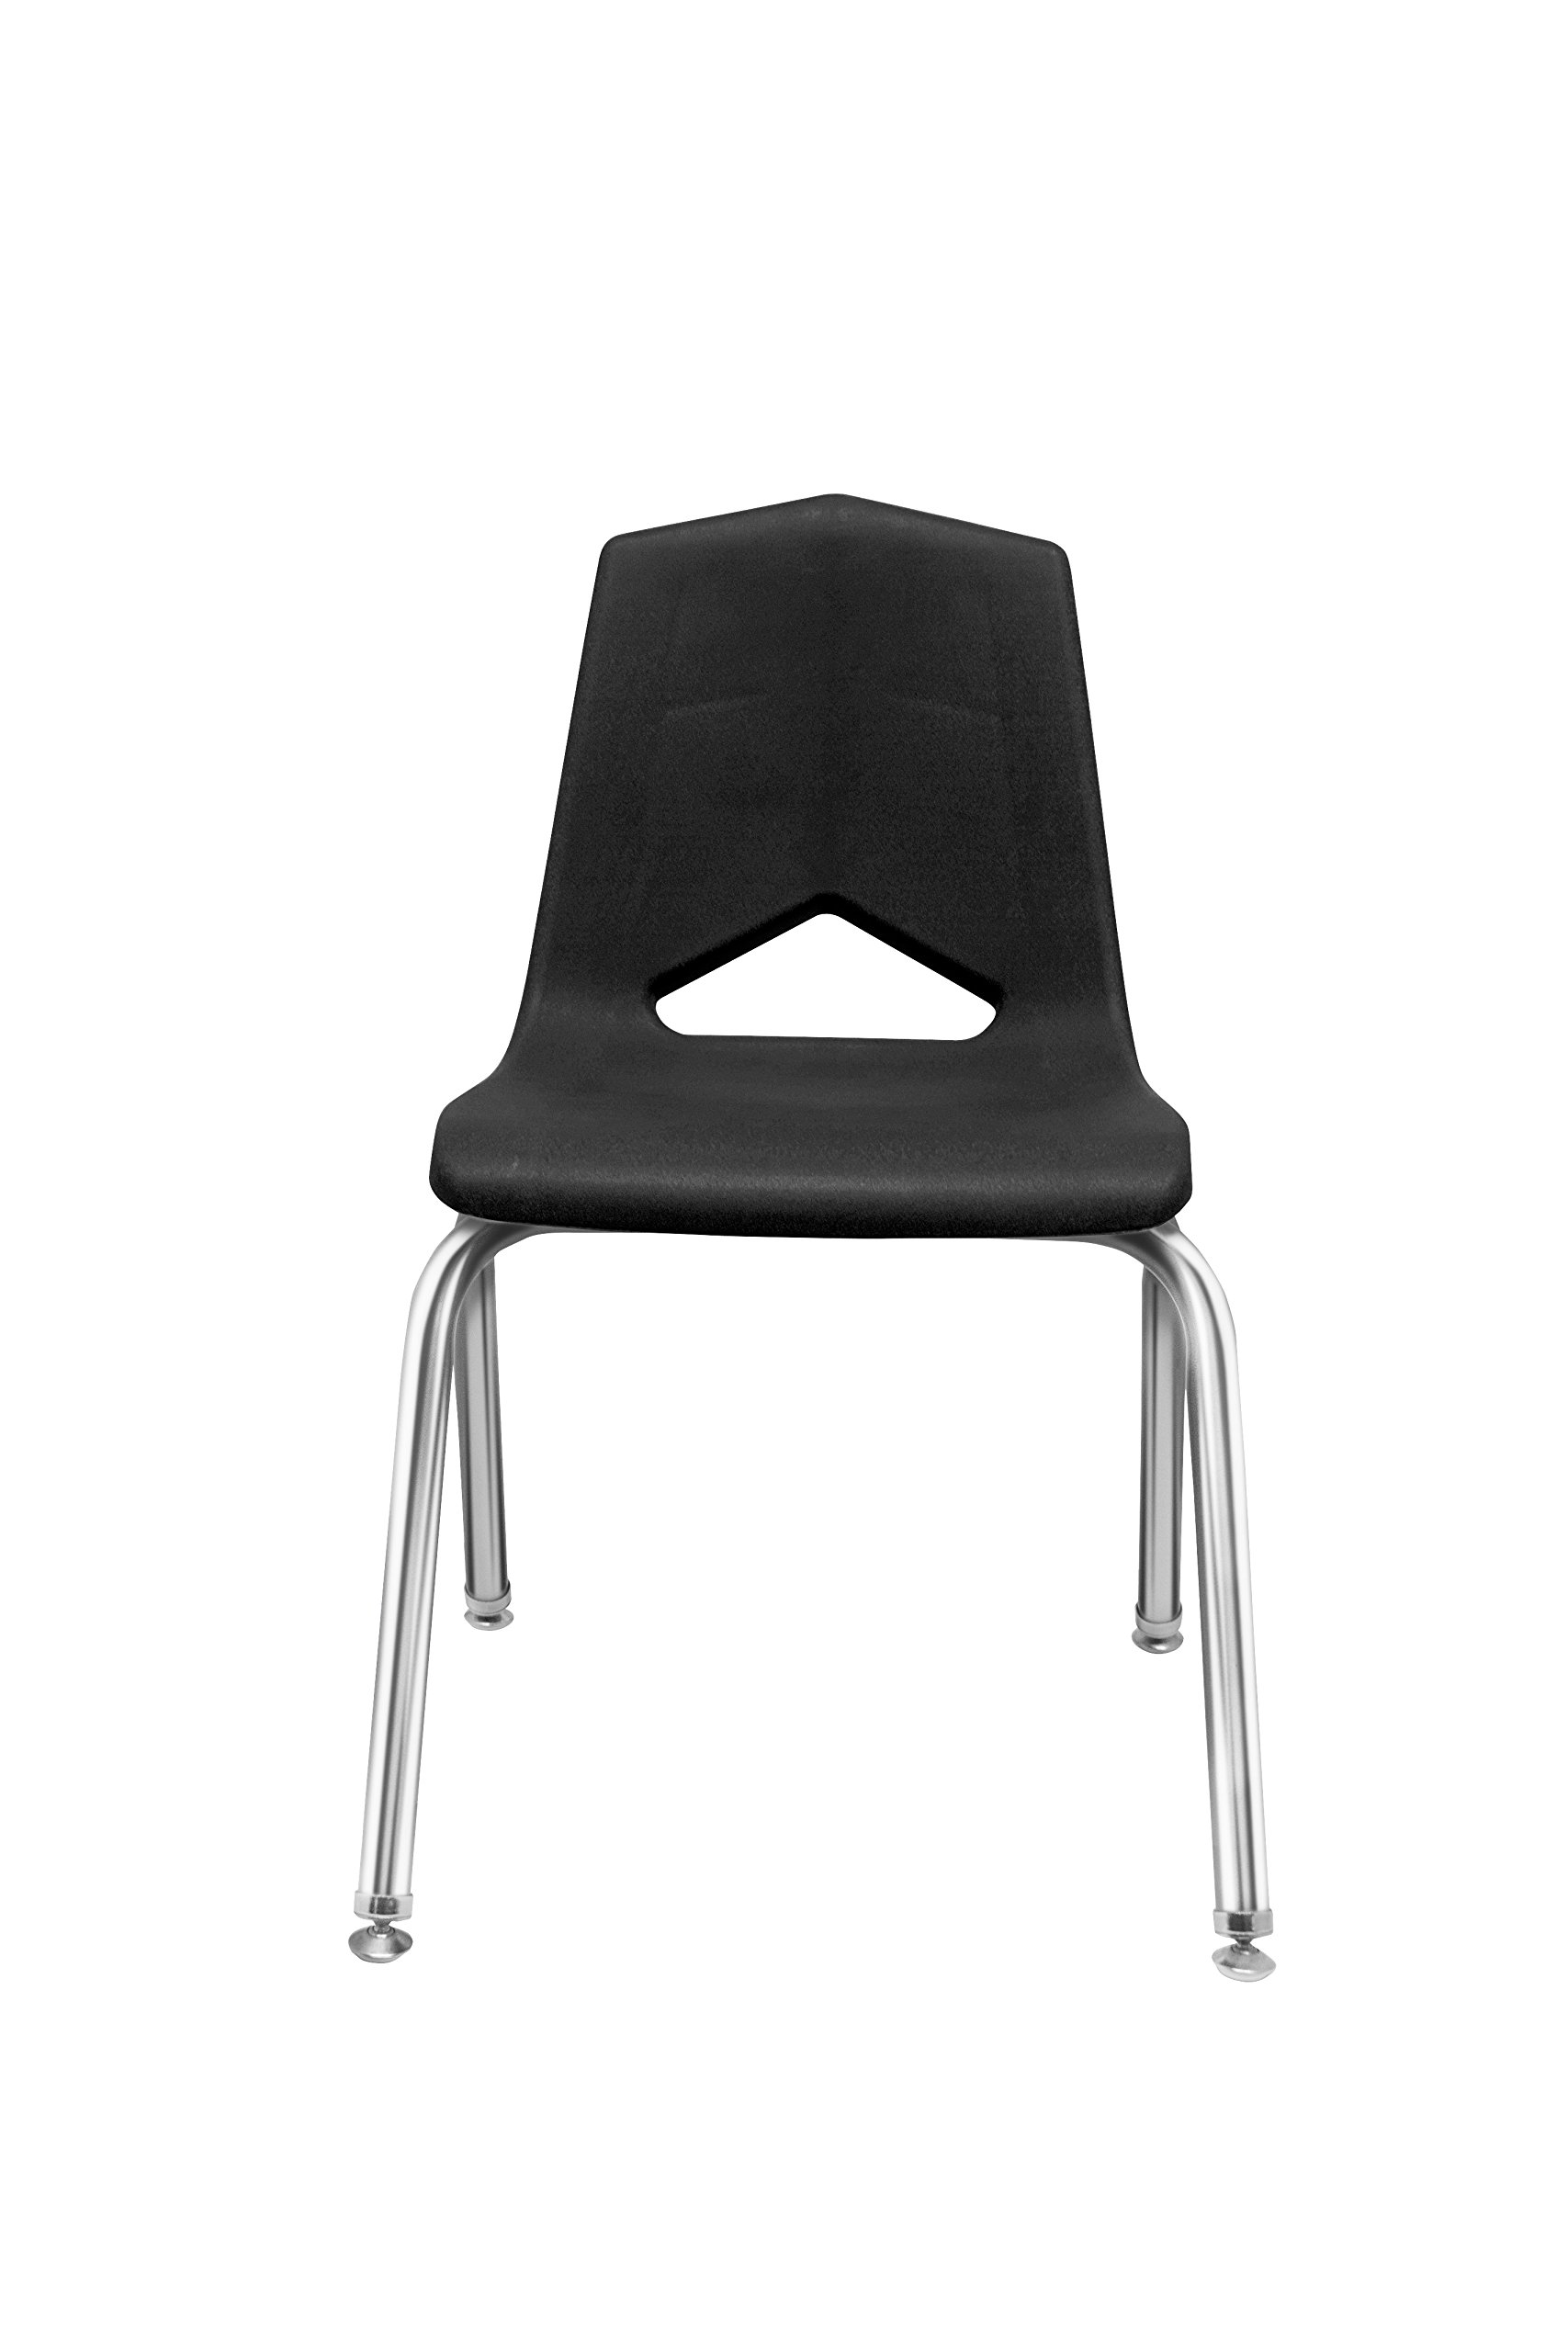 Marco Group MG1101 Series V-Back Chair, 14-Inch Seat Height, Black/Chrome, 6 Per Carton